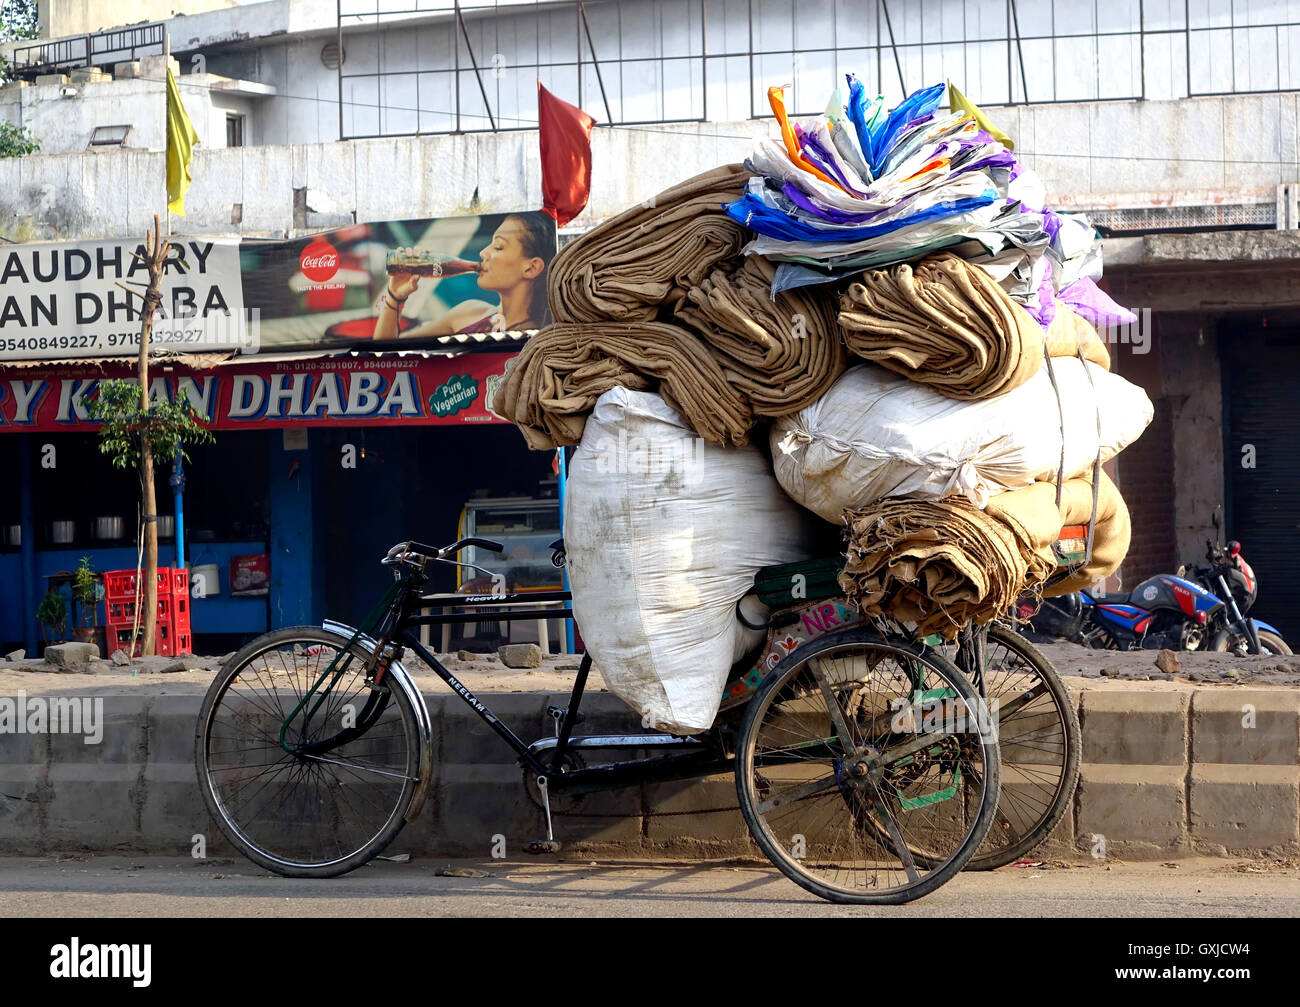 Indian street scene - load of sacs, bags and other miscellany on a man-pulled rickshaw. - Stock Image